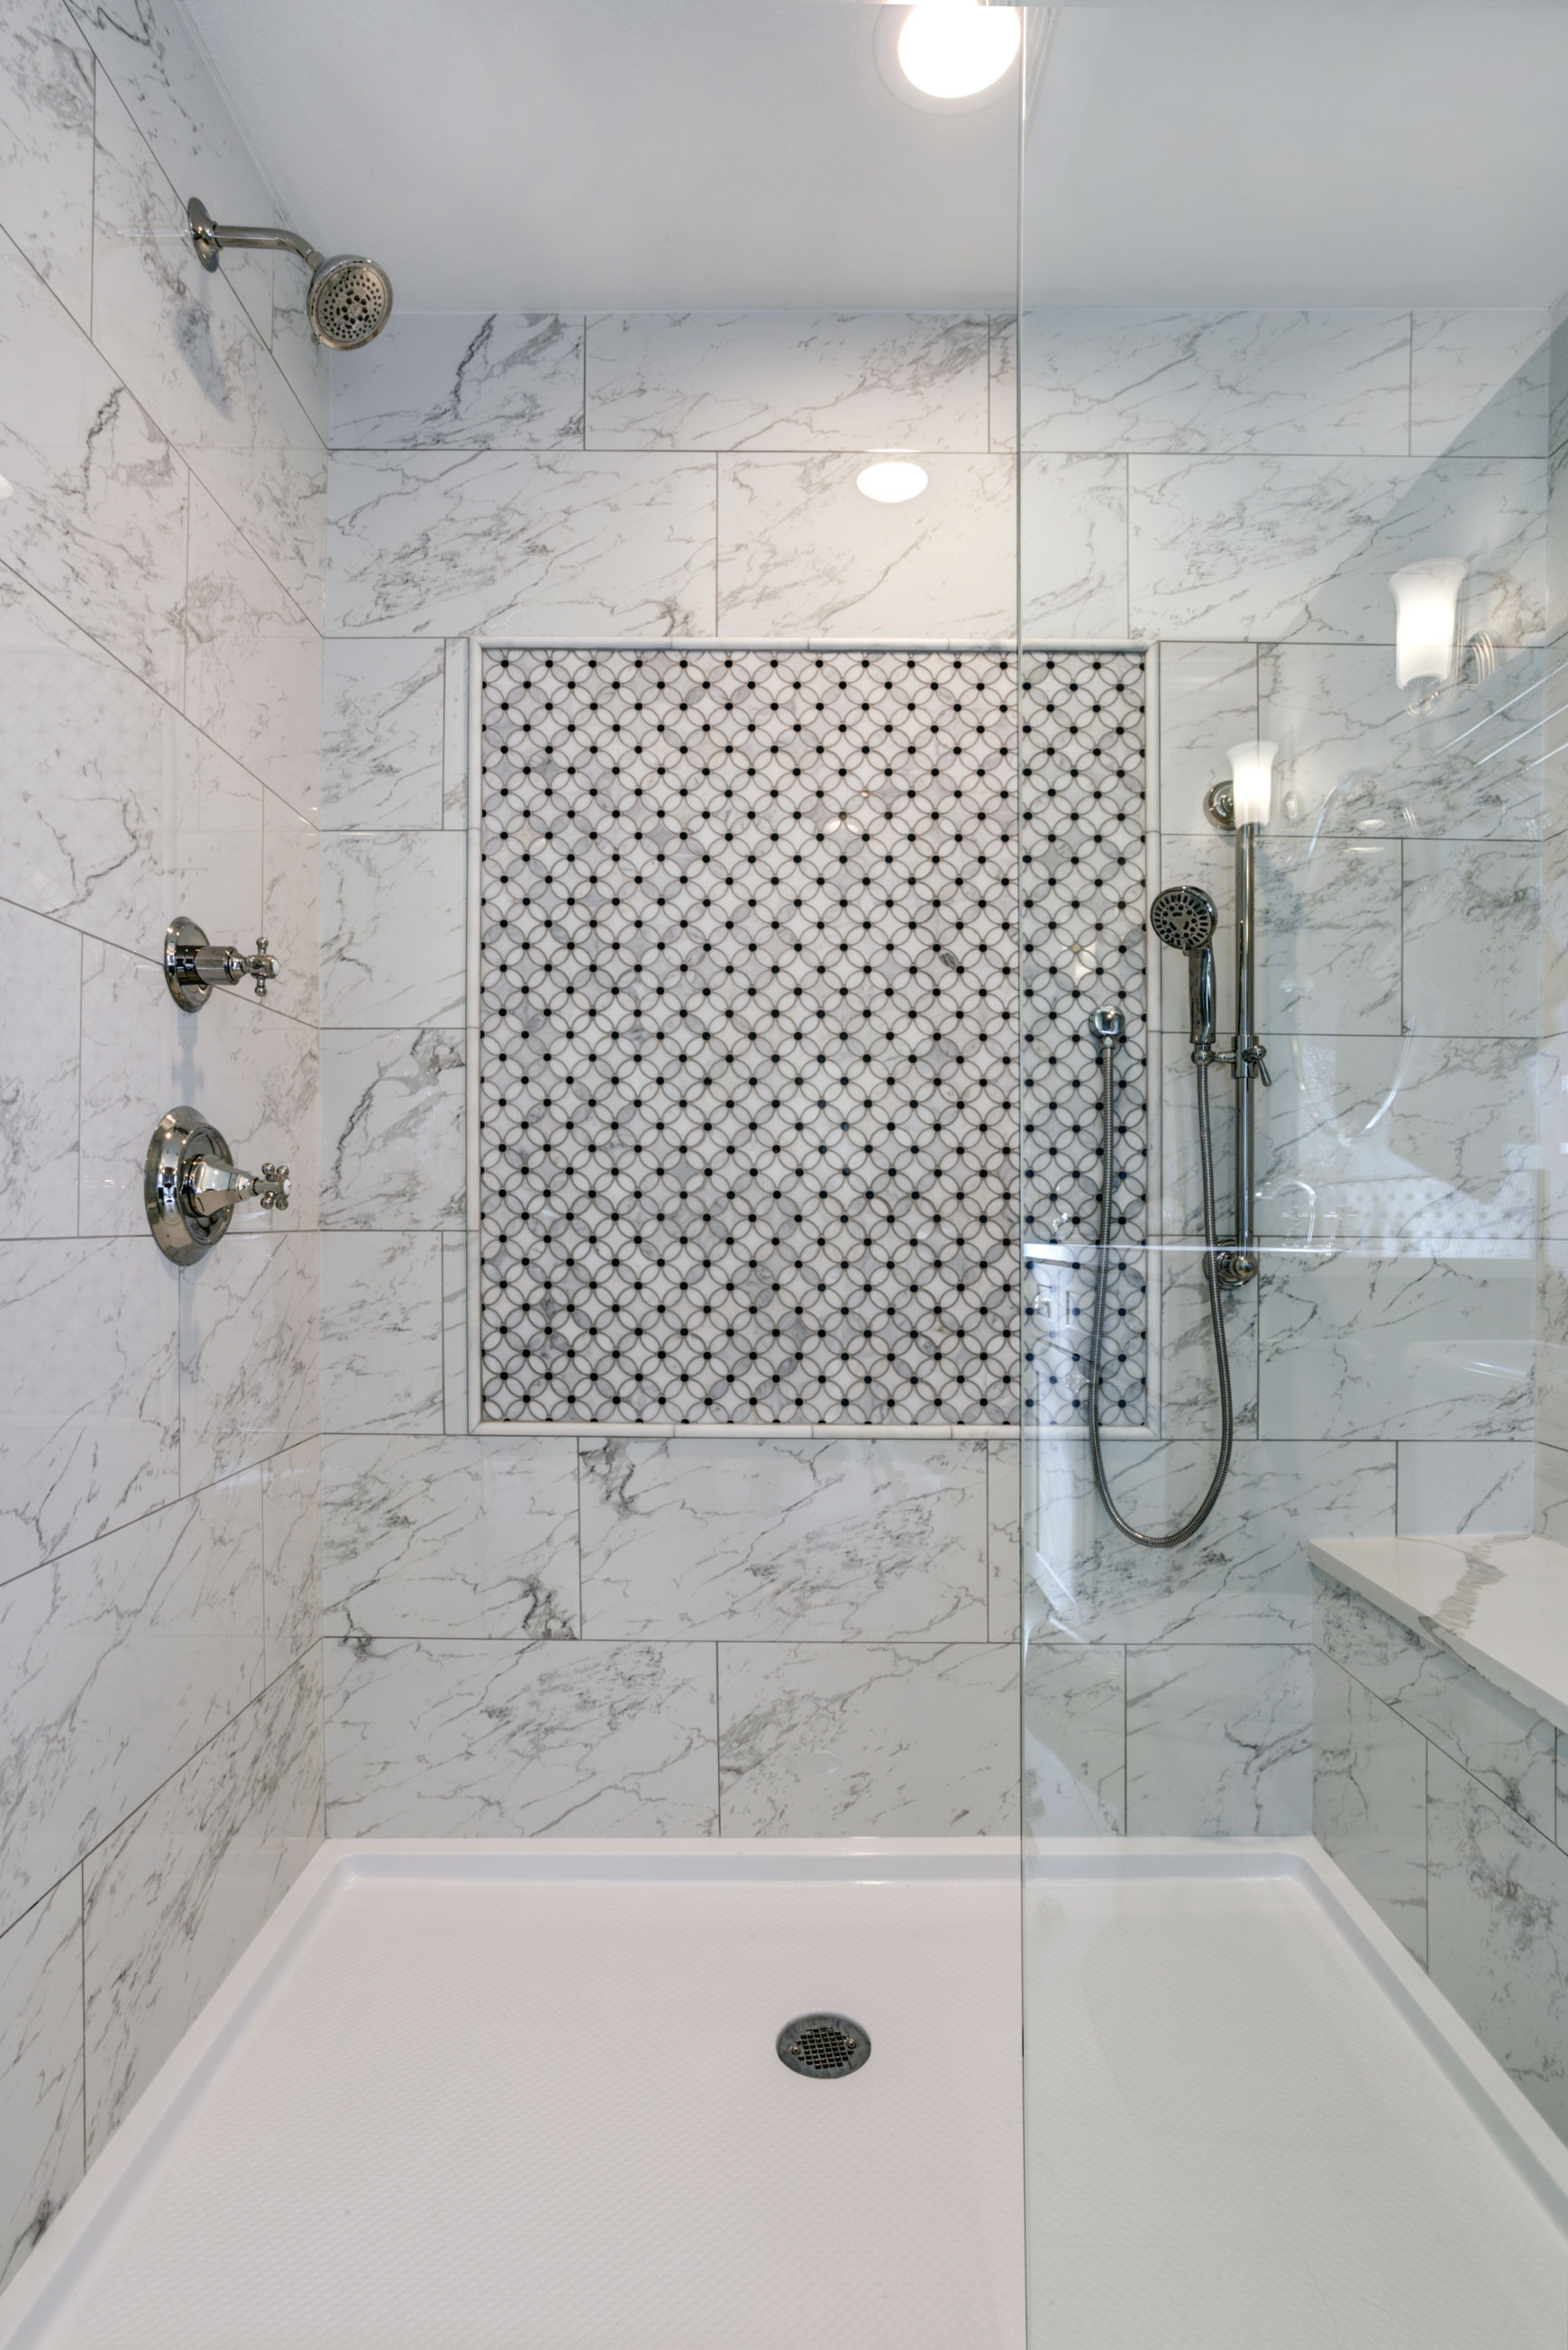 A bathroom shower with tiles on its walls.